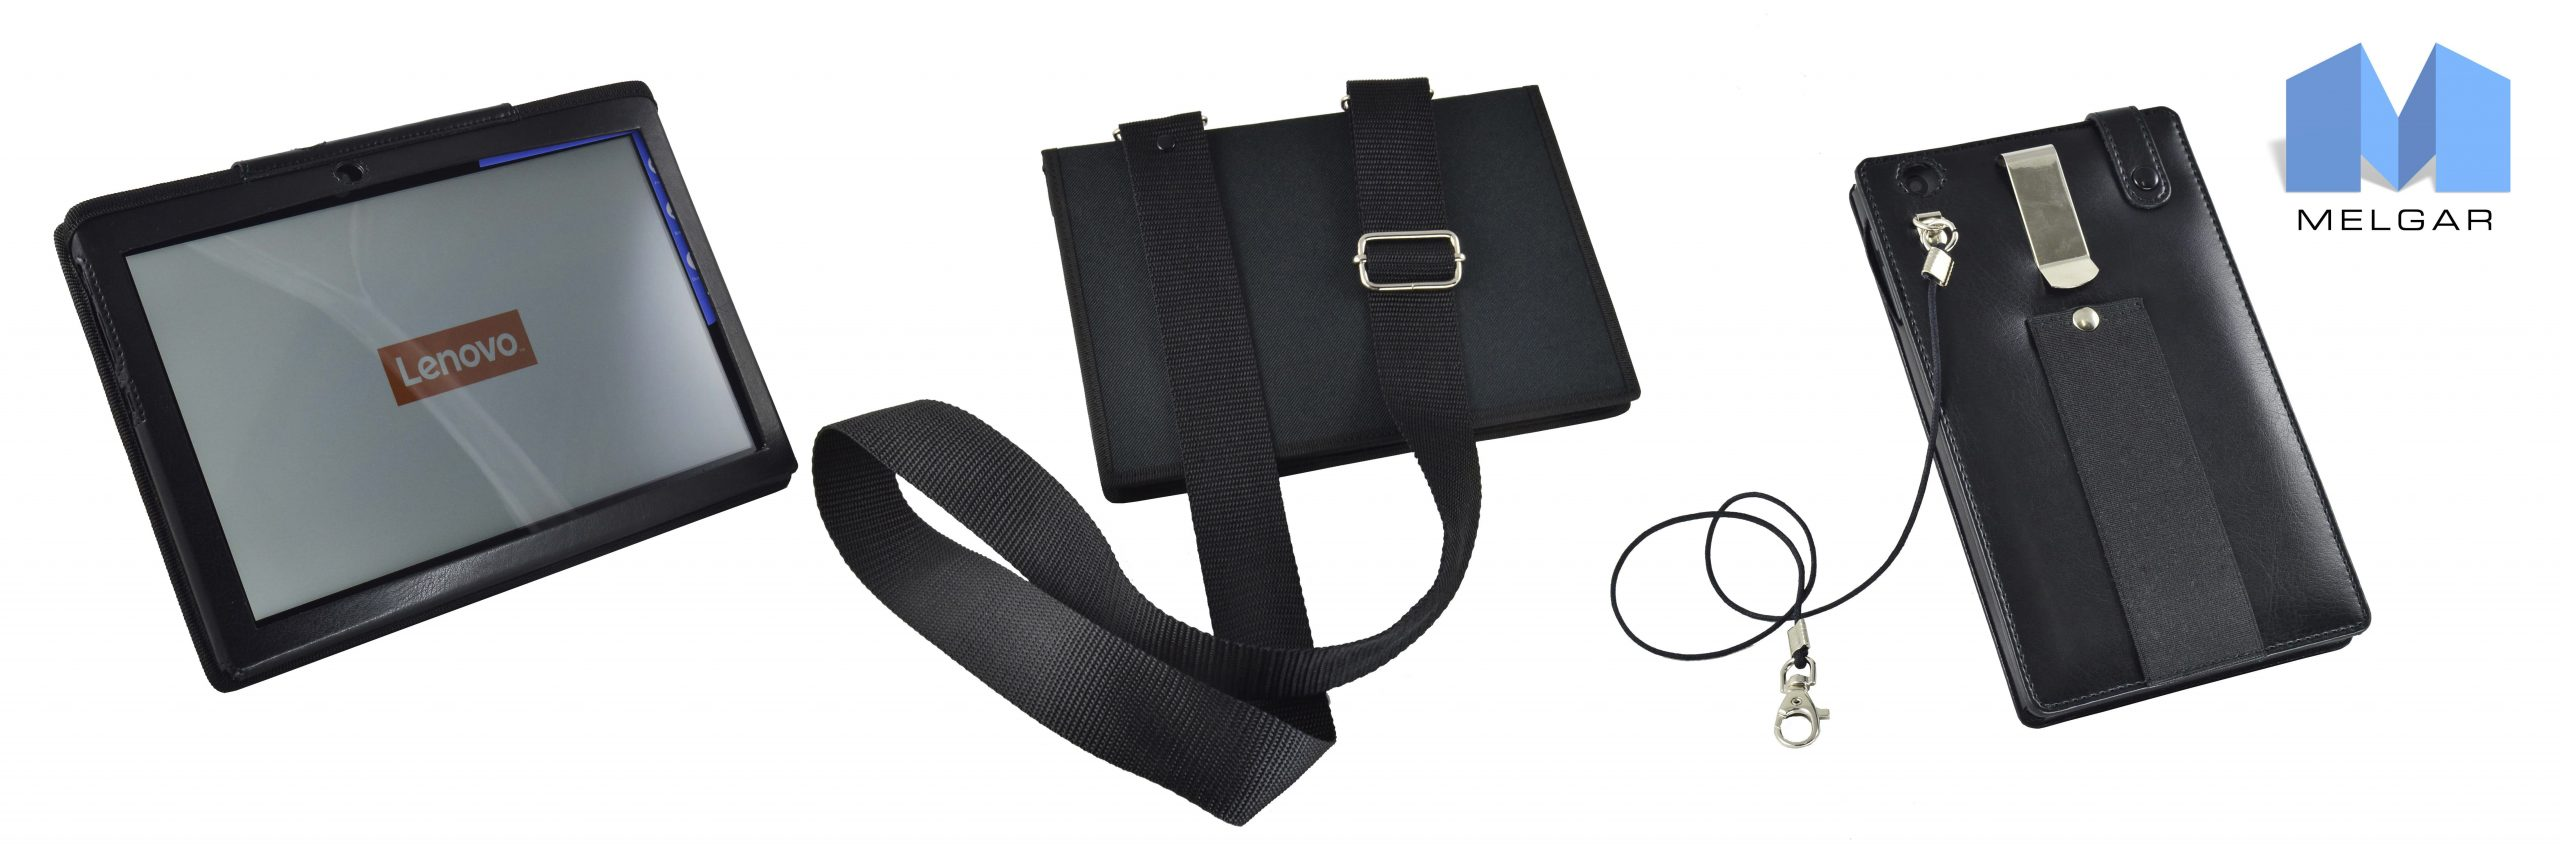 Custom tablet cases to protect any company's device in the field